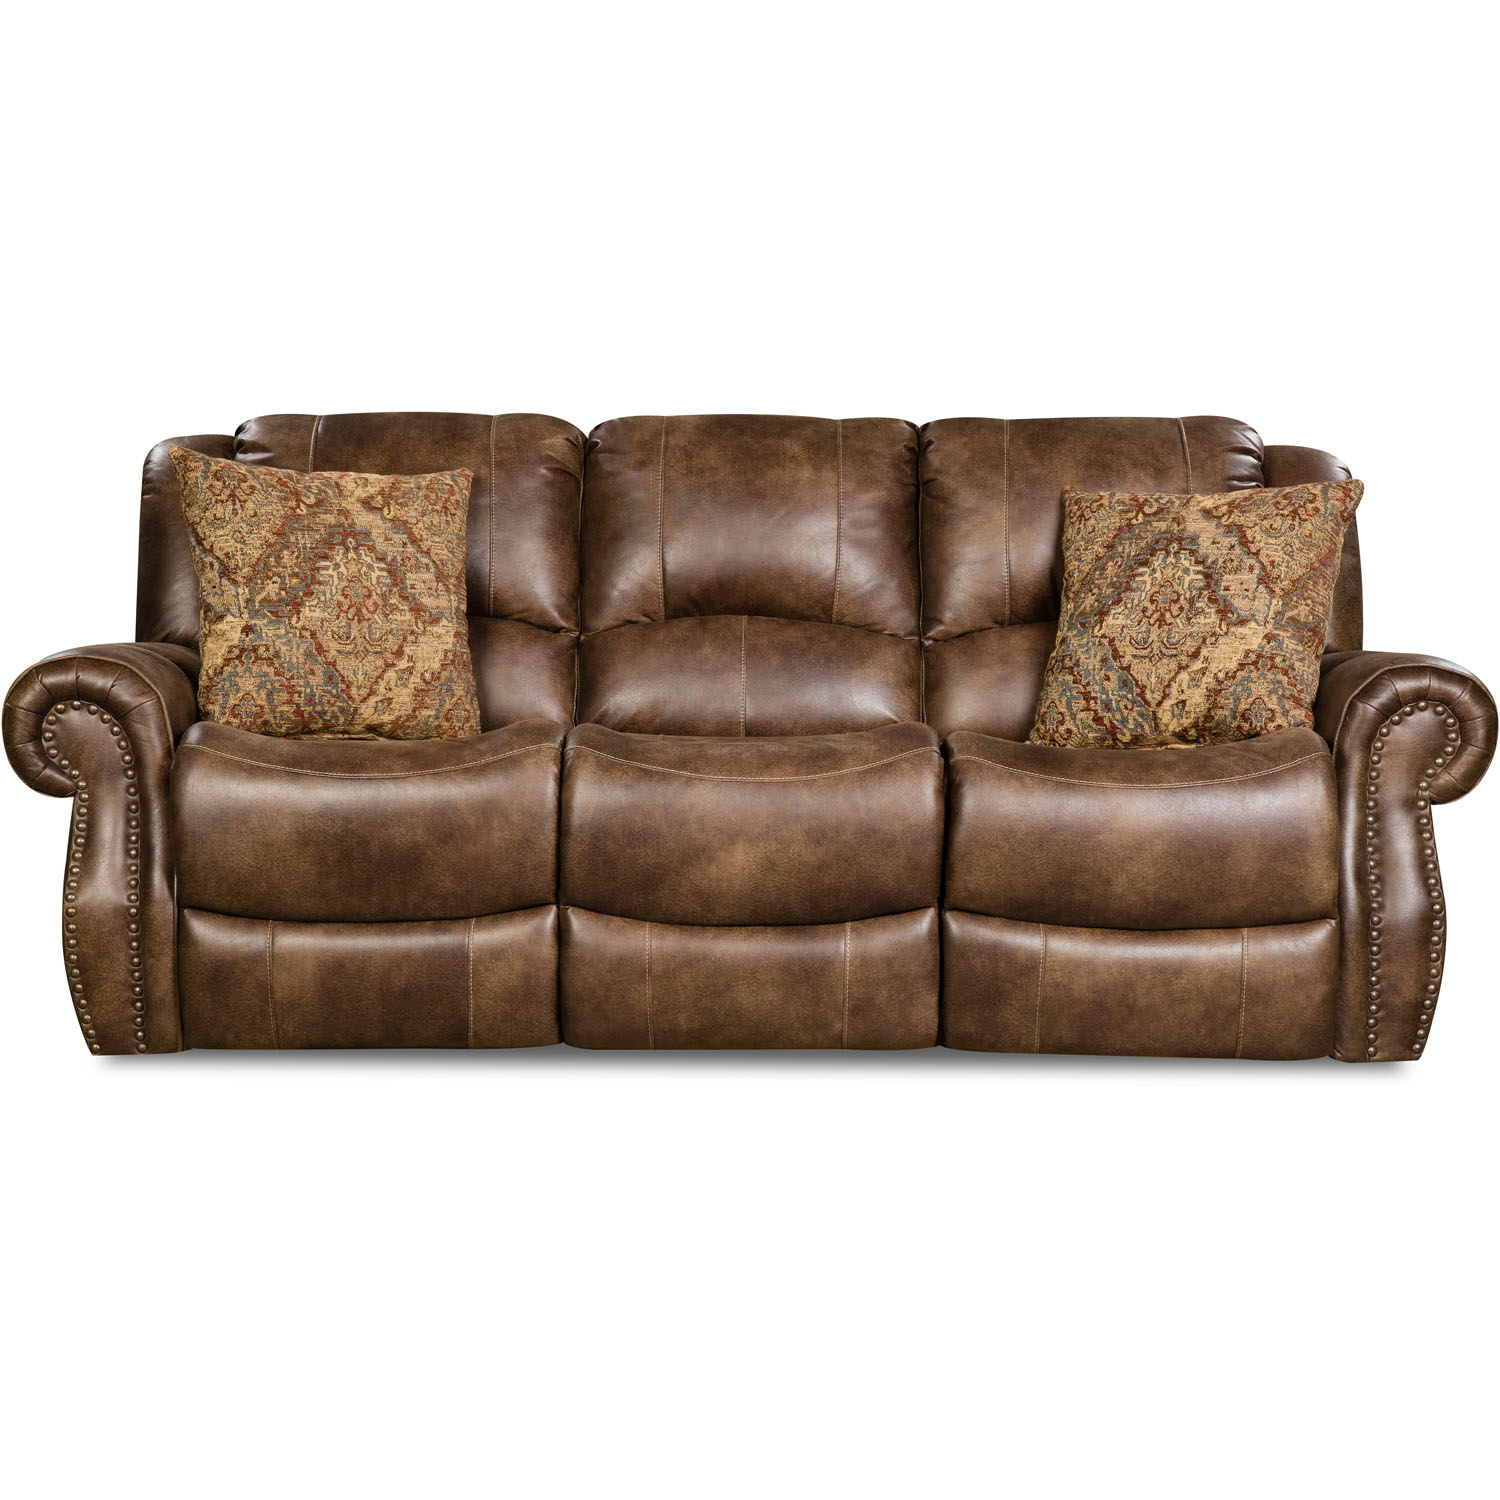 Cambridge Stratton Double Reclining Sofa